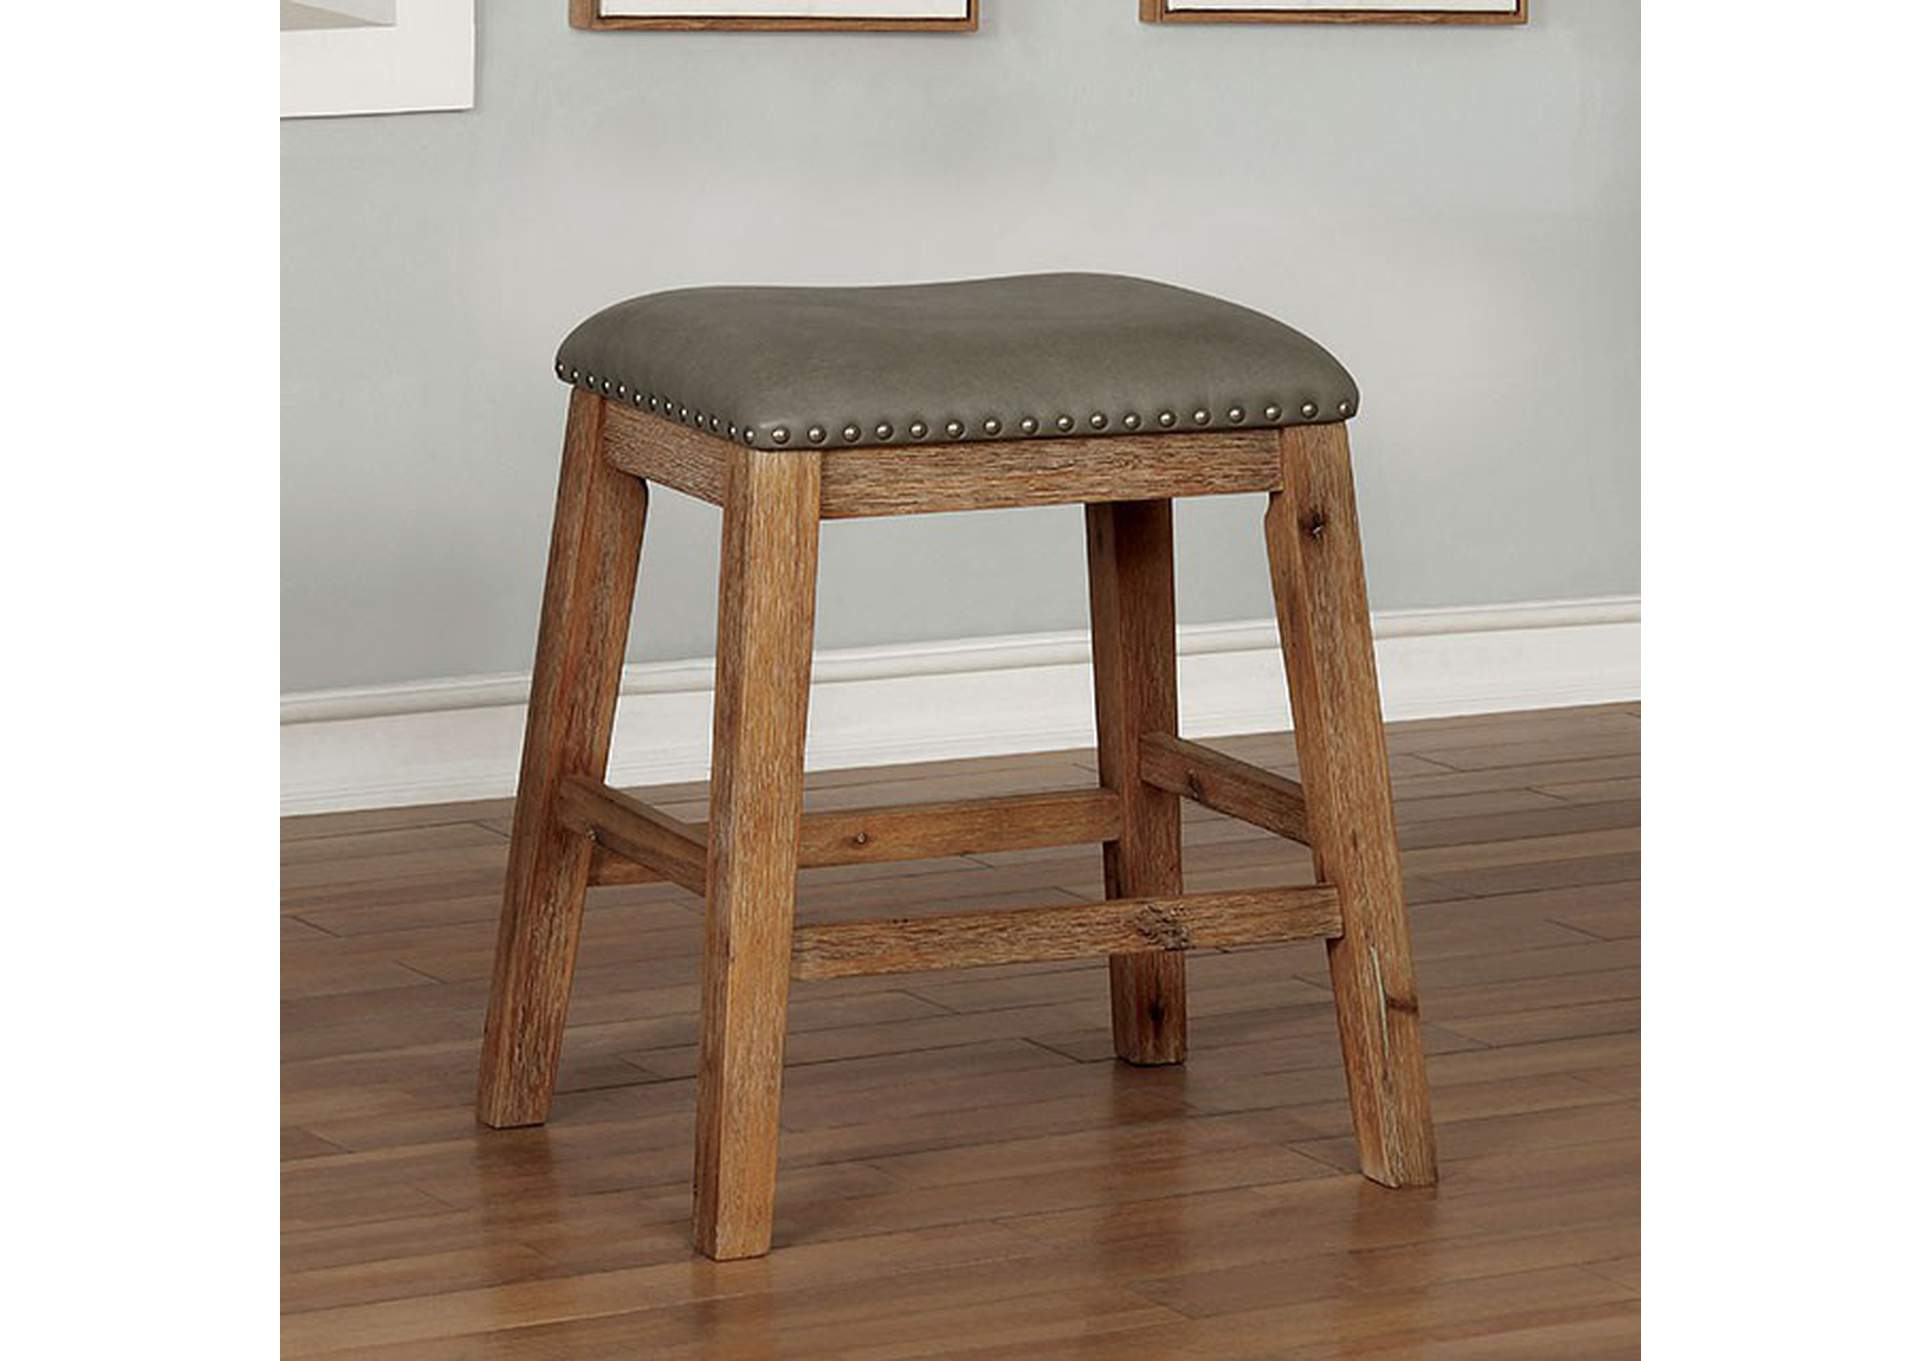 Lana Weathered Natural Tone Counter Height Barstool,Furniture of America